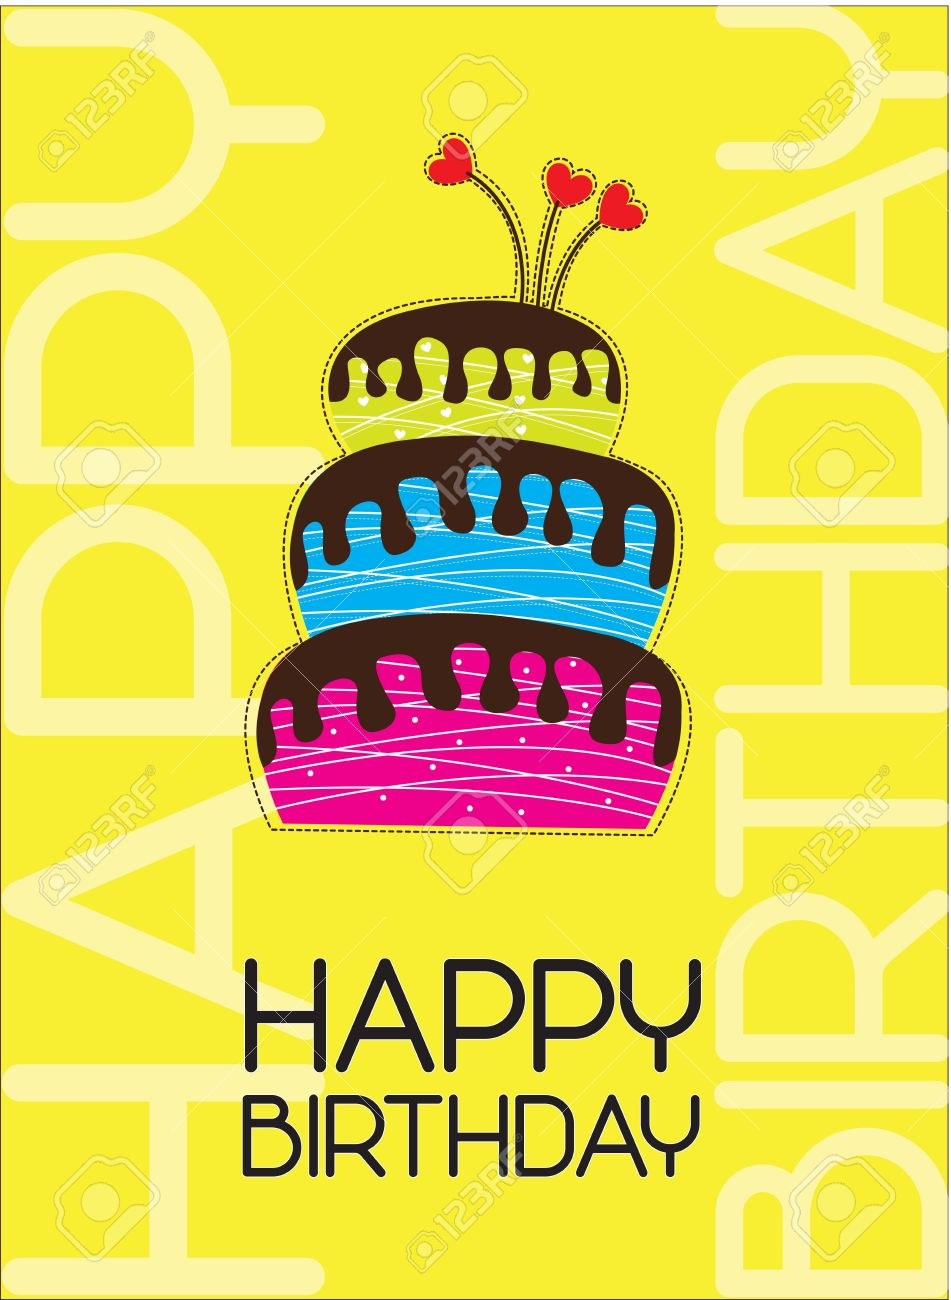 Happy Birthday Card With A Big Cake Stock Vector